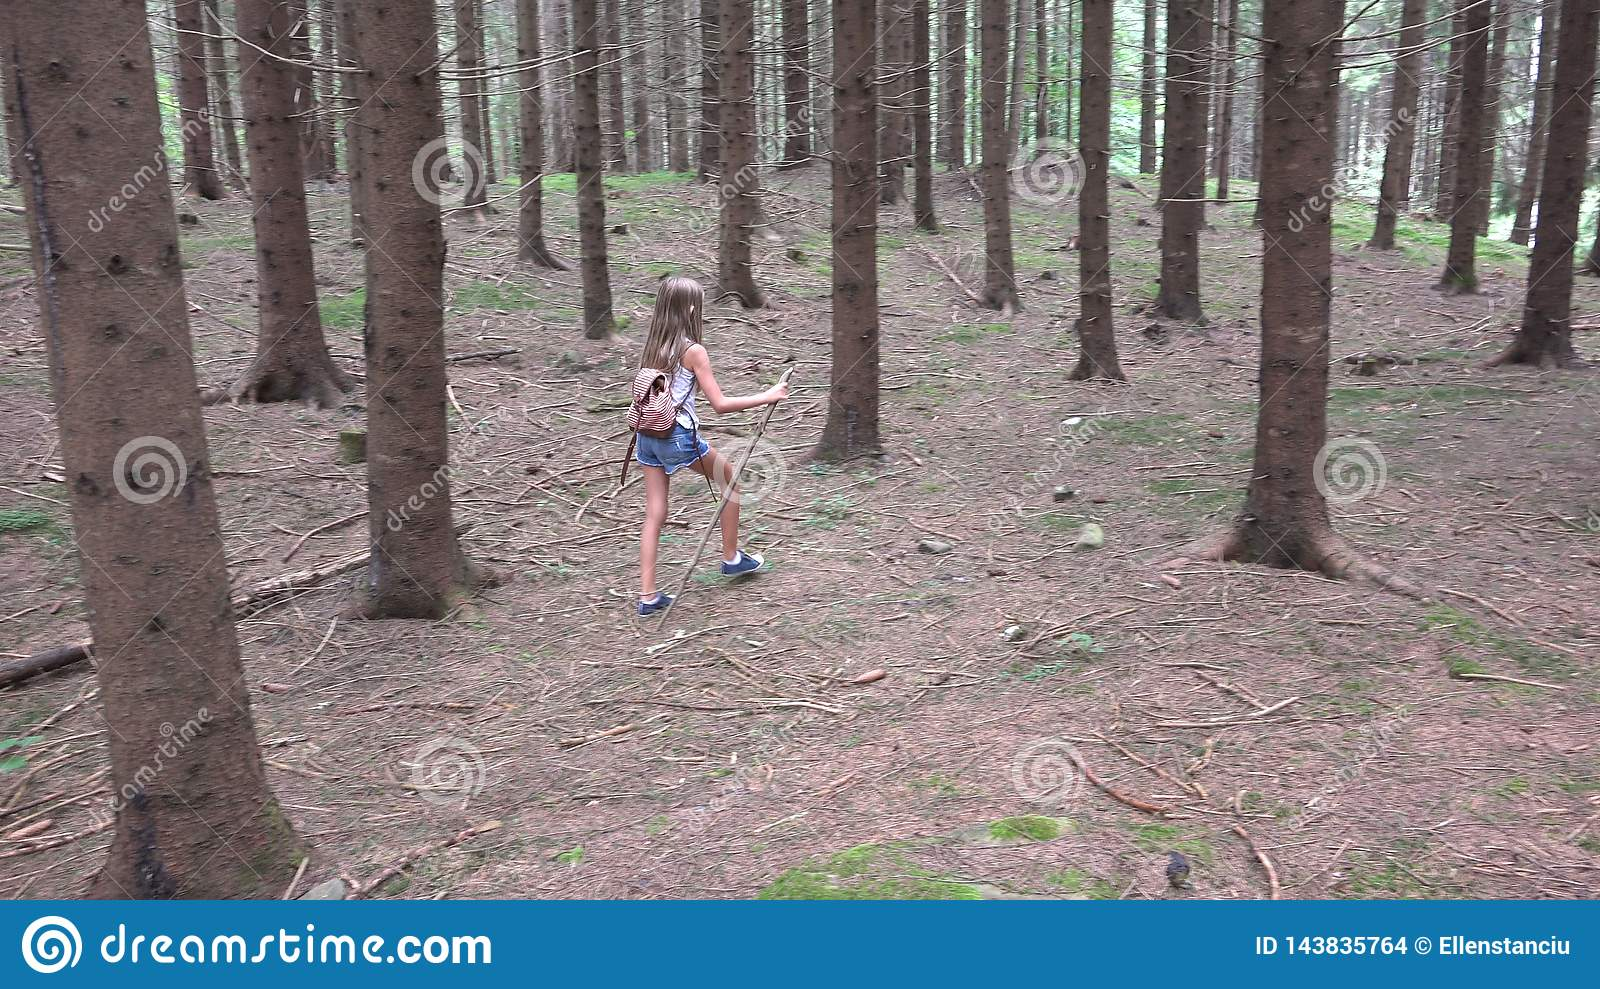 Child Walking in Forest, Kid Outdoor Nature, Girl Playing in Camping Adventure